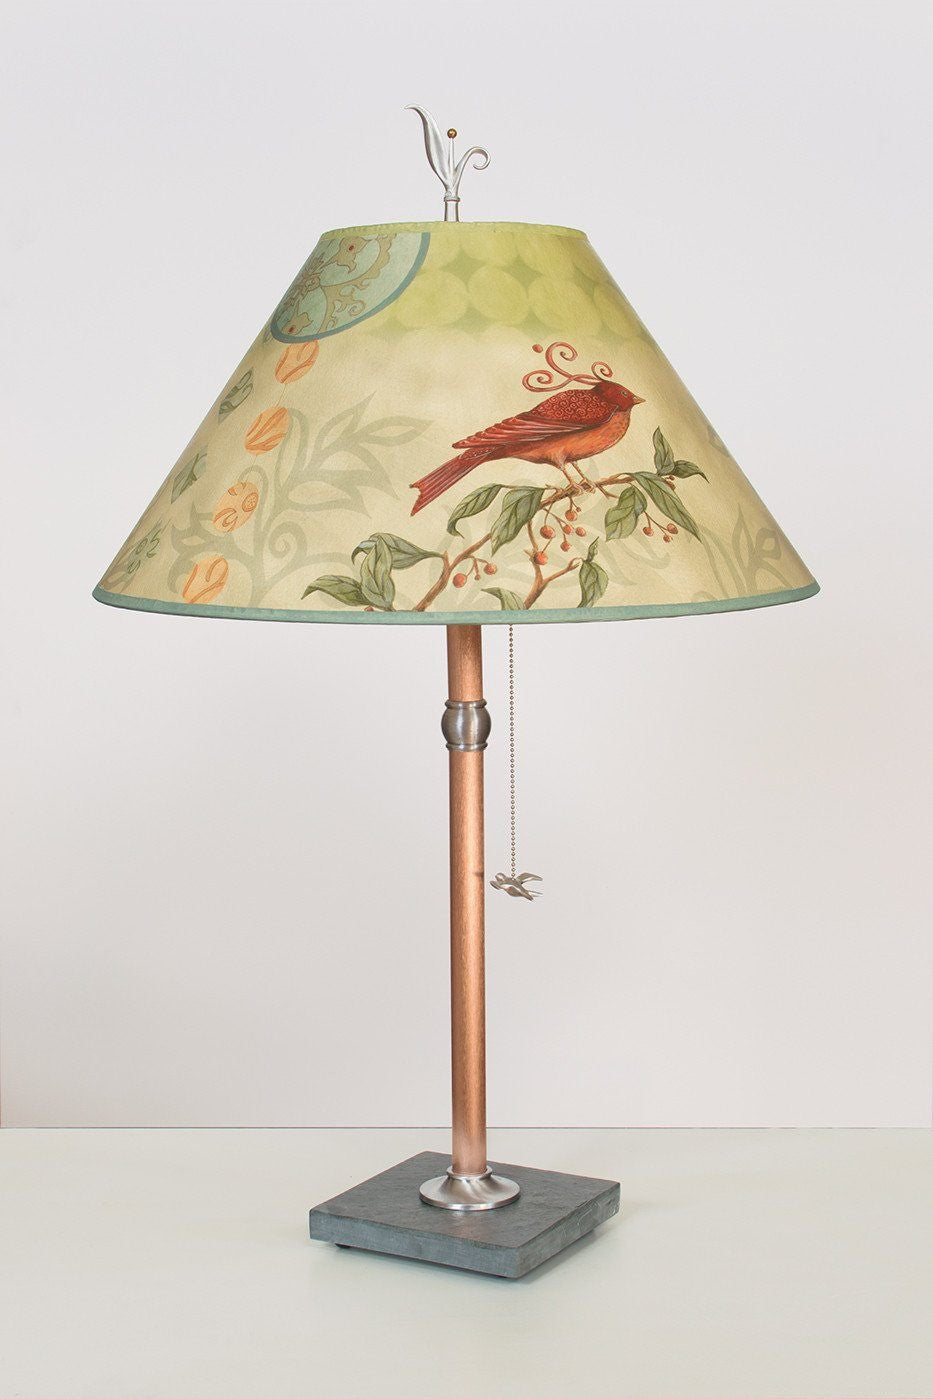 Copper Table Lamp on Vermont Slate with Large Conical Shade in Birdscape